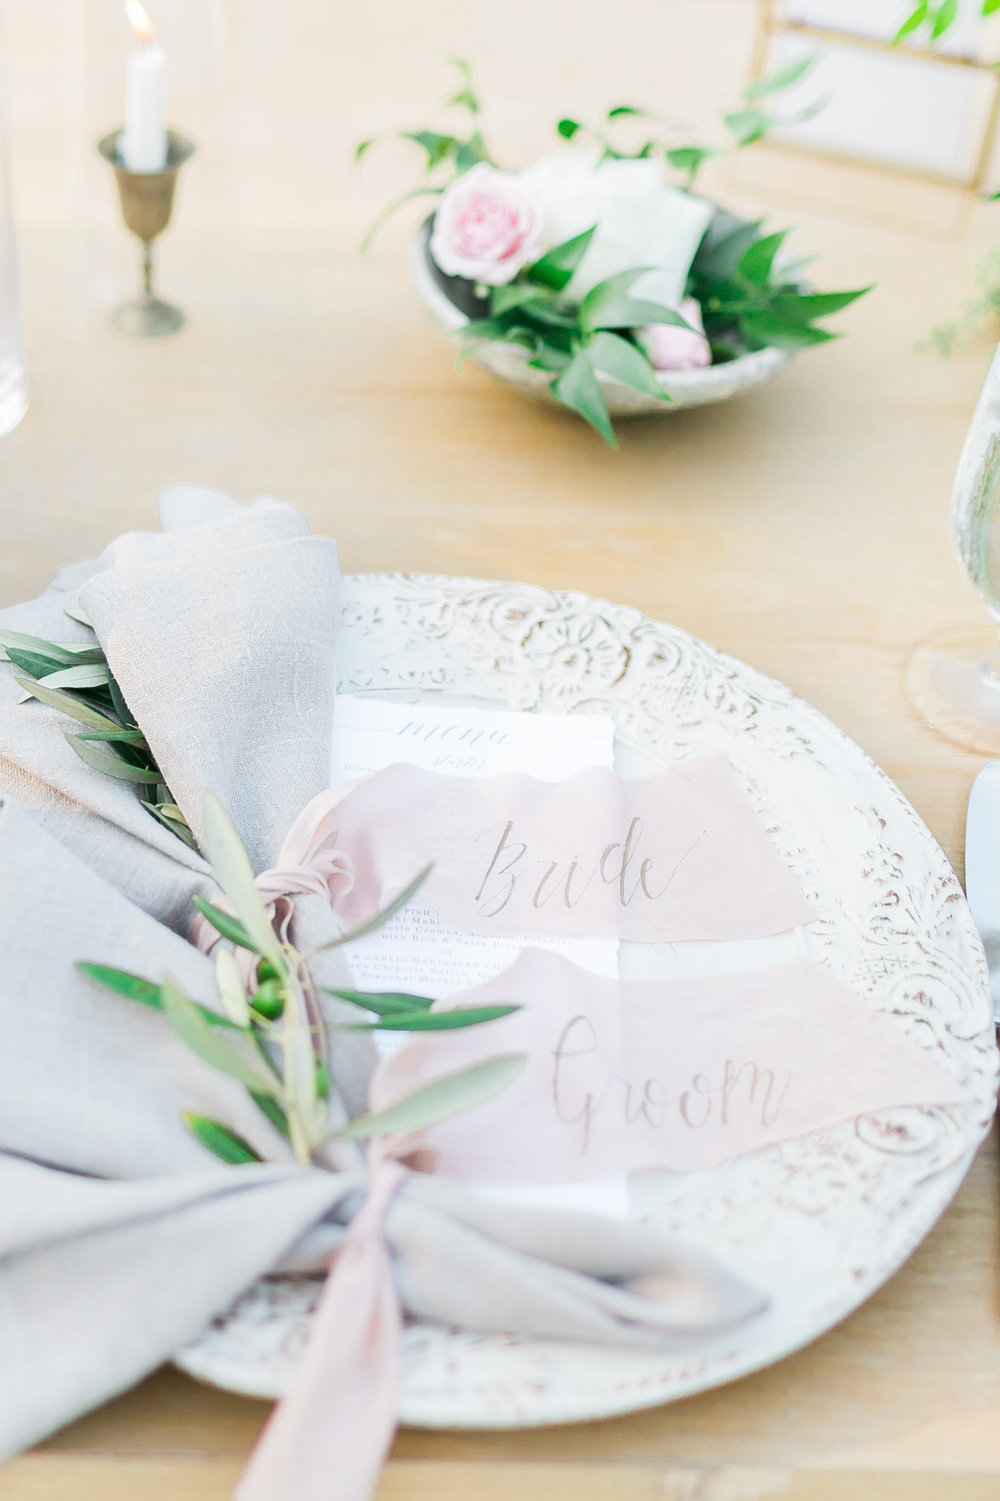 Napkins were tied with long blush ribbons that had the guest's name calligraphic on them.     Destination Wedding Planner  ANDREA EPPOLITO EVENTS  · Images by  J.ANNE P  HOTOOGRAPHY  · Video  HOO FILMS  · Venue Ritz Carlton Bacara Santa Barbara ·Gown MONIQUE LHULLIER ·Bridesmaids Dresses  SHOW ME YOUR MUMU ·Stationery  SHE PAPERIE ·Bride's Shoes  BADGLEY MISCHKA ·Hair and Makeup  TEAM HAIR AND MAKEUP · Floral  BLUE MAGNOLIA ·Linen  LA TAVOLA ·Decor Rentals  TENT MERCHANT ·Calligraphy  EBB ·Lighting  FIVE STAR AV ·Ice Cream Station  MCCONNELL'S ICE CREAM